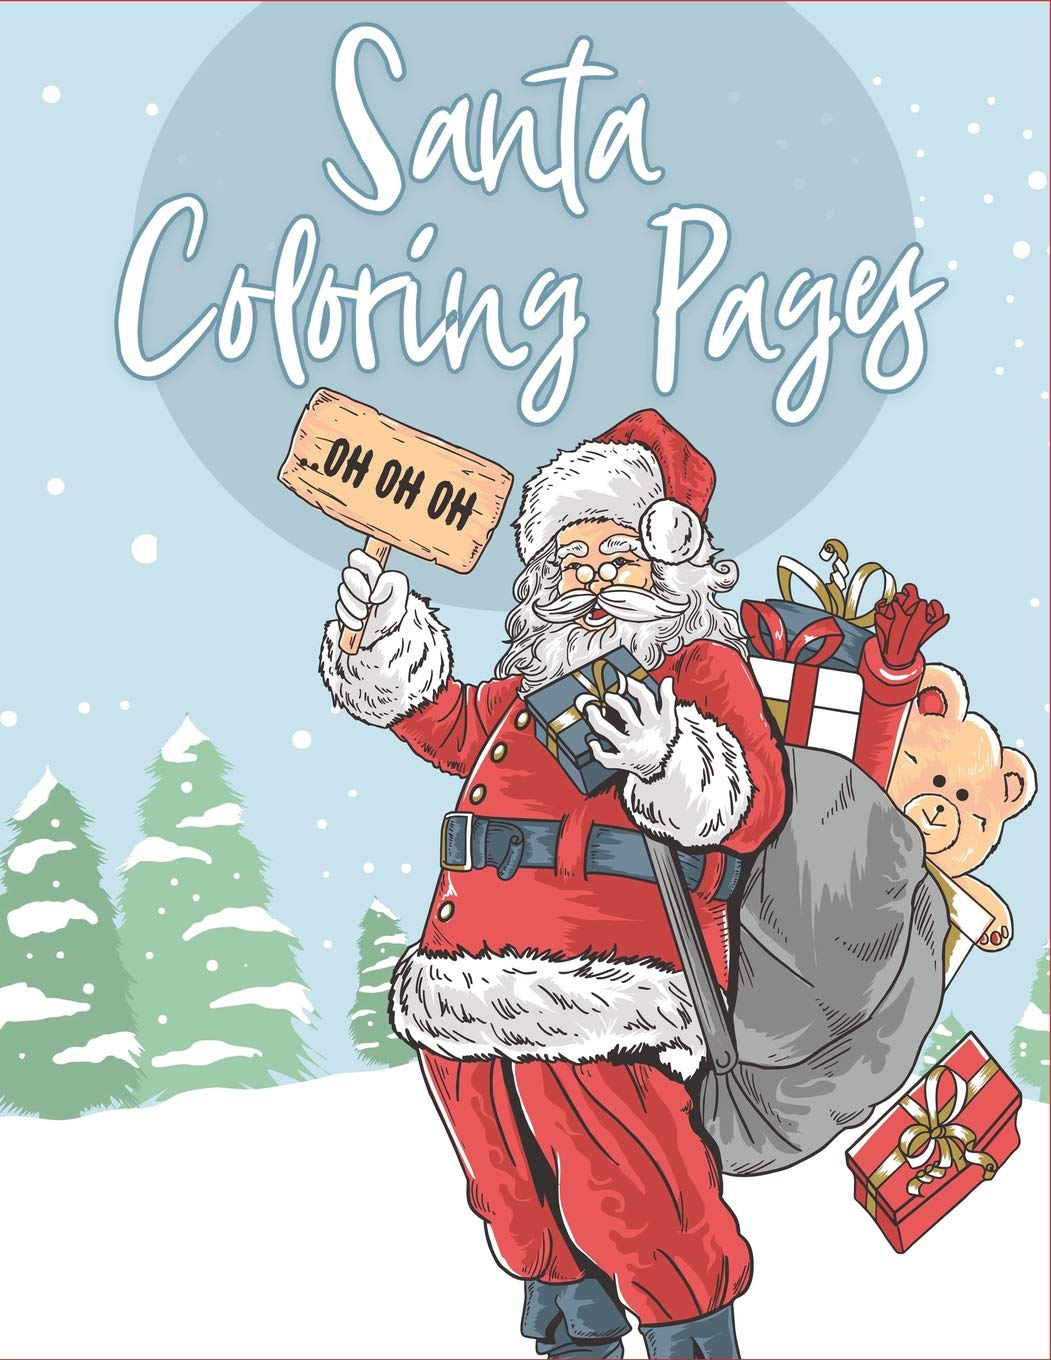 Santa Coloring Pages 70 Christmas Coloring Books For Kids